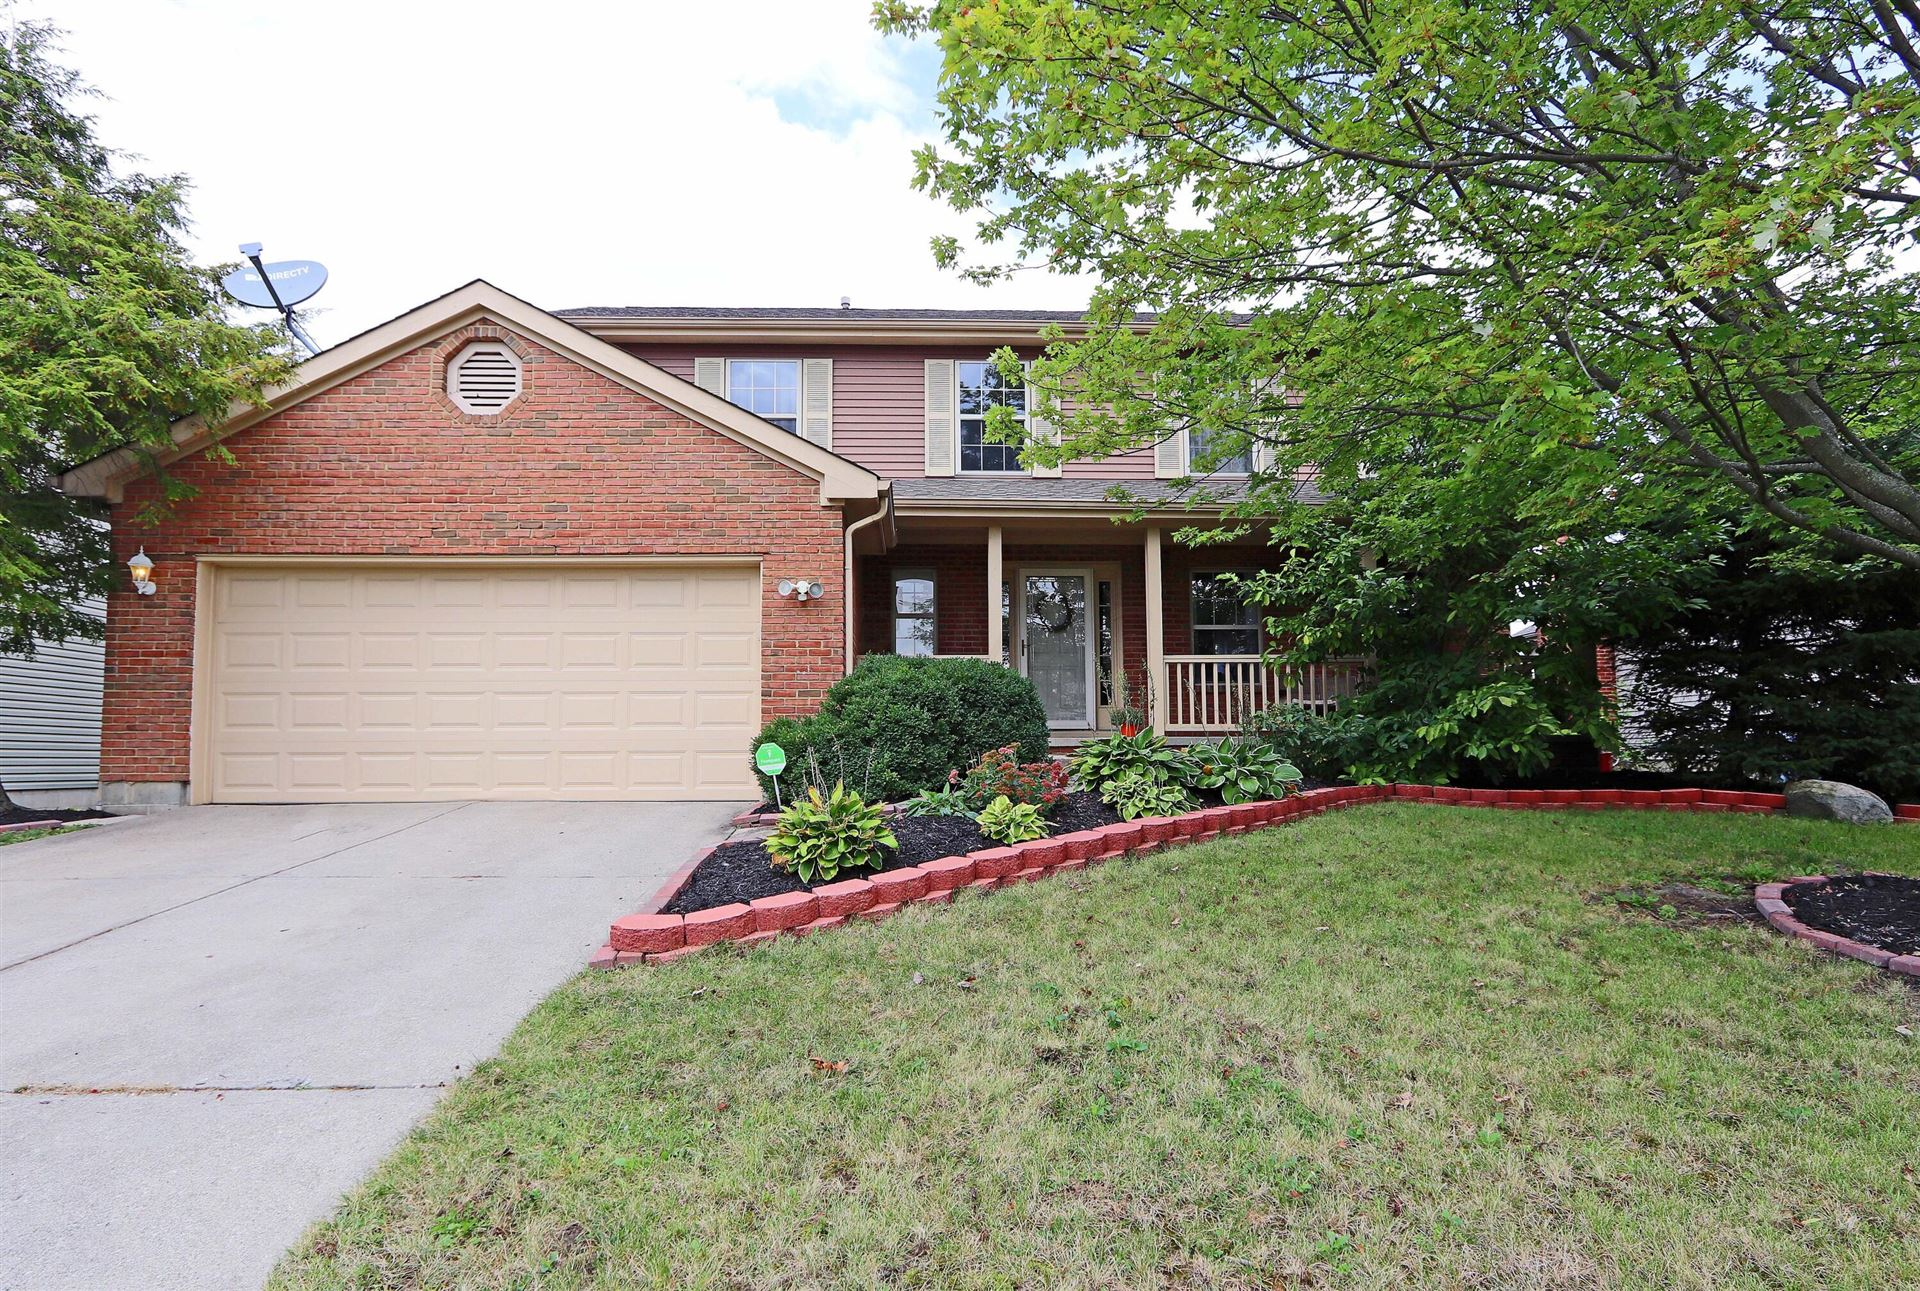 Photo of 872 Suntree Drive, Westerville, OH 43081 (MLS # 221039909)